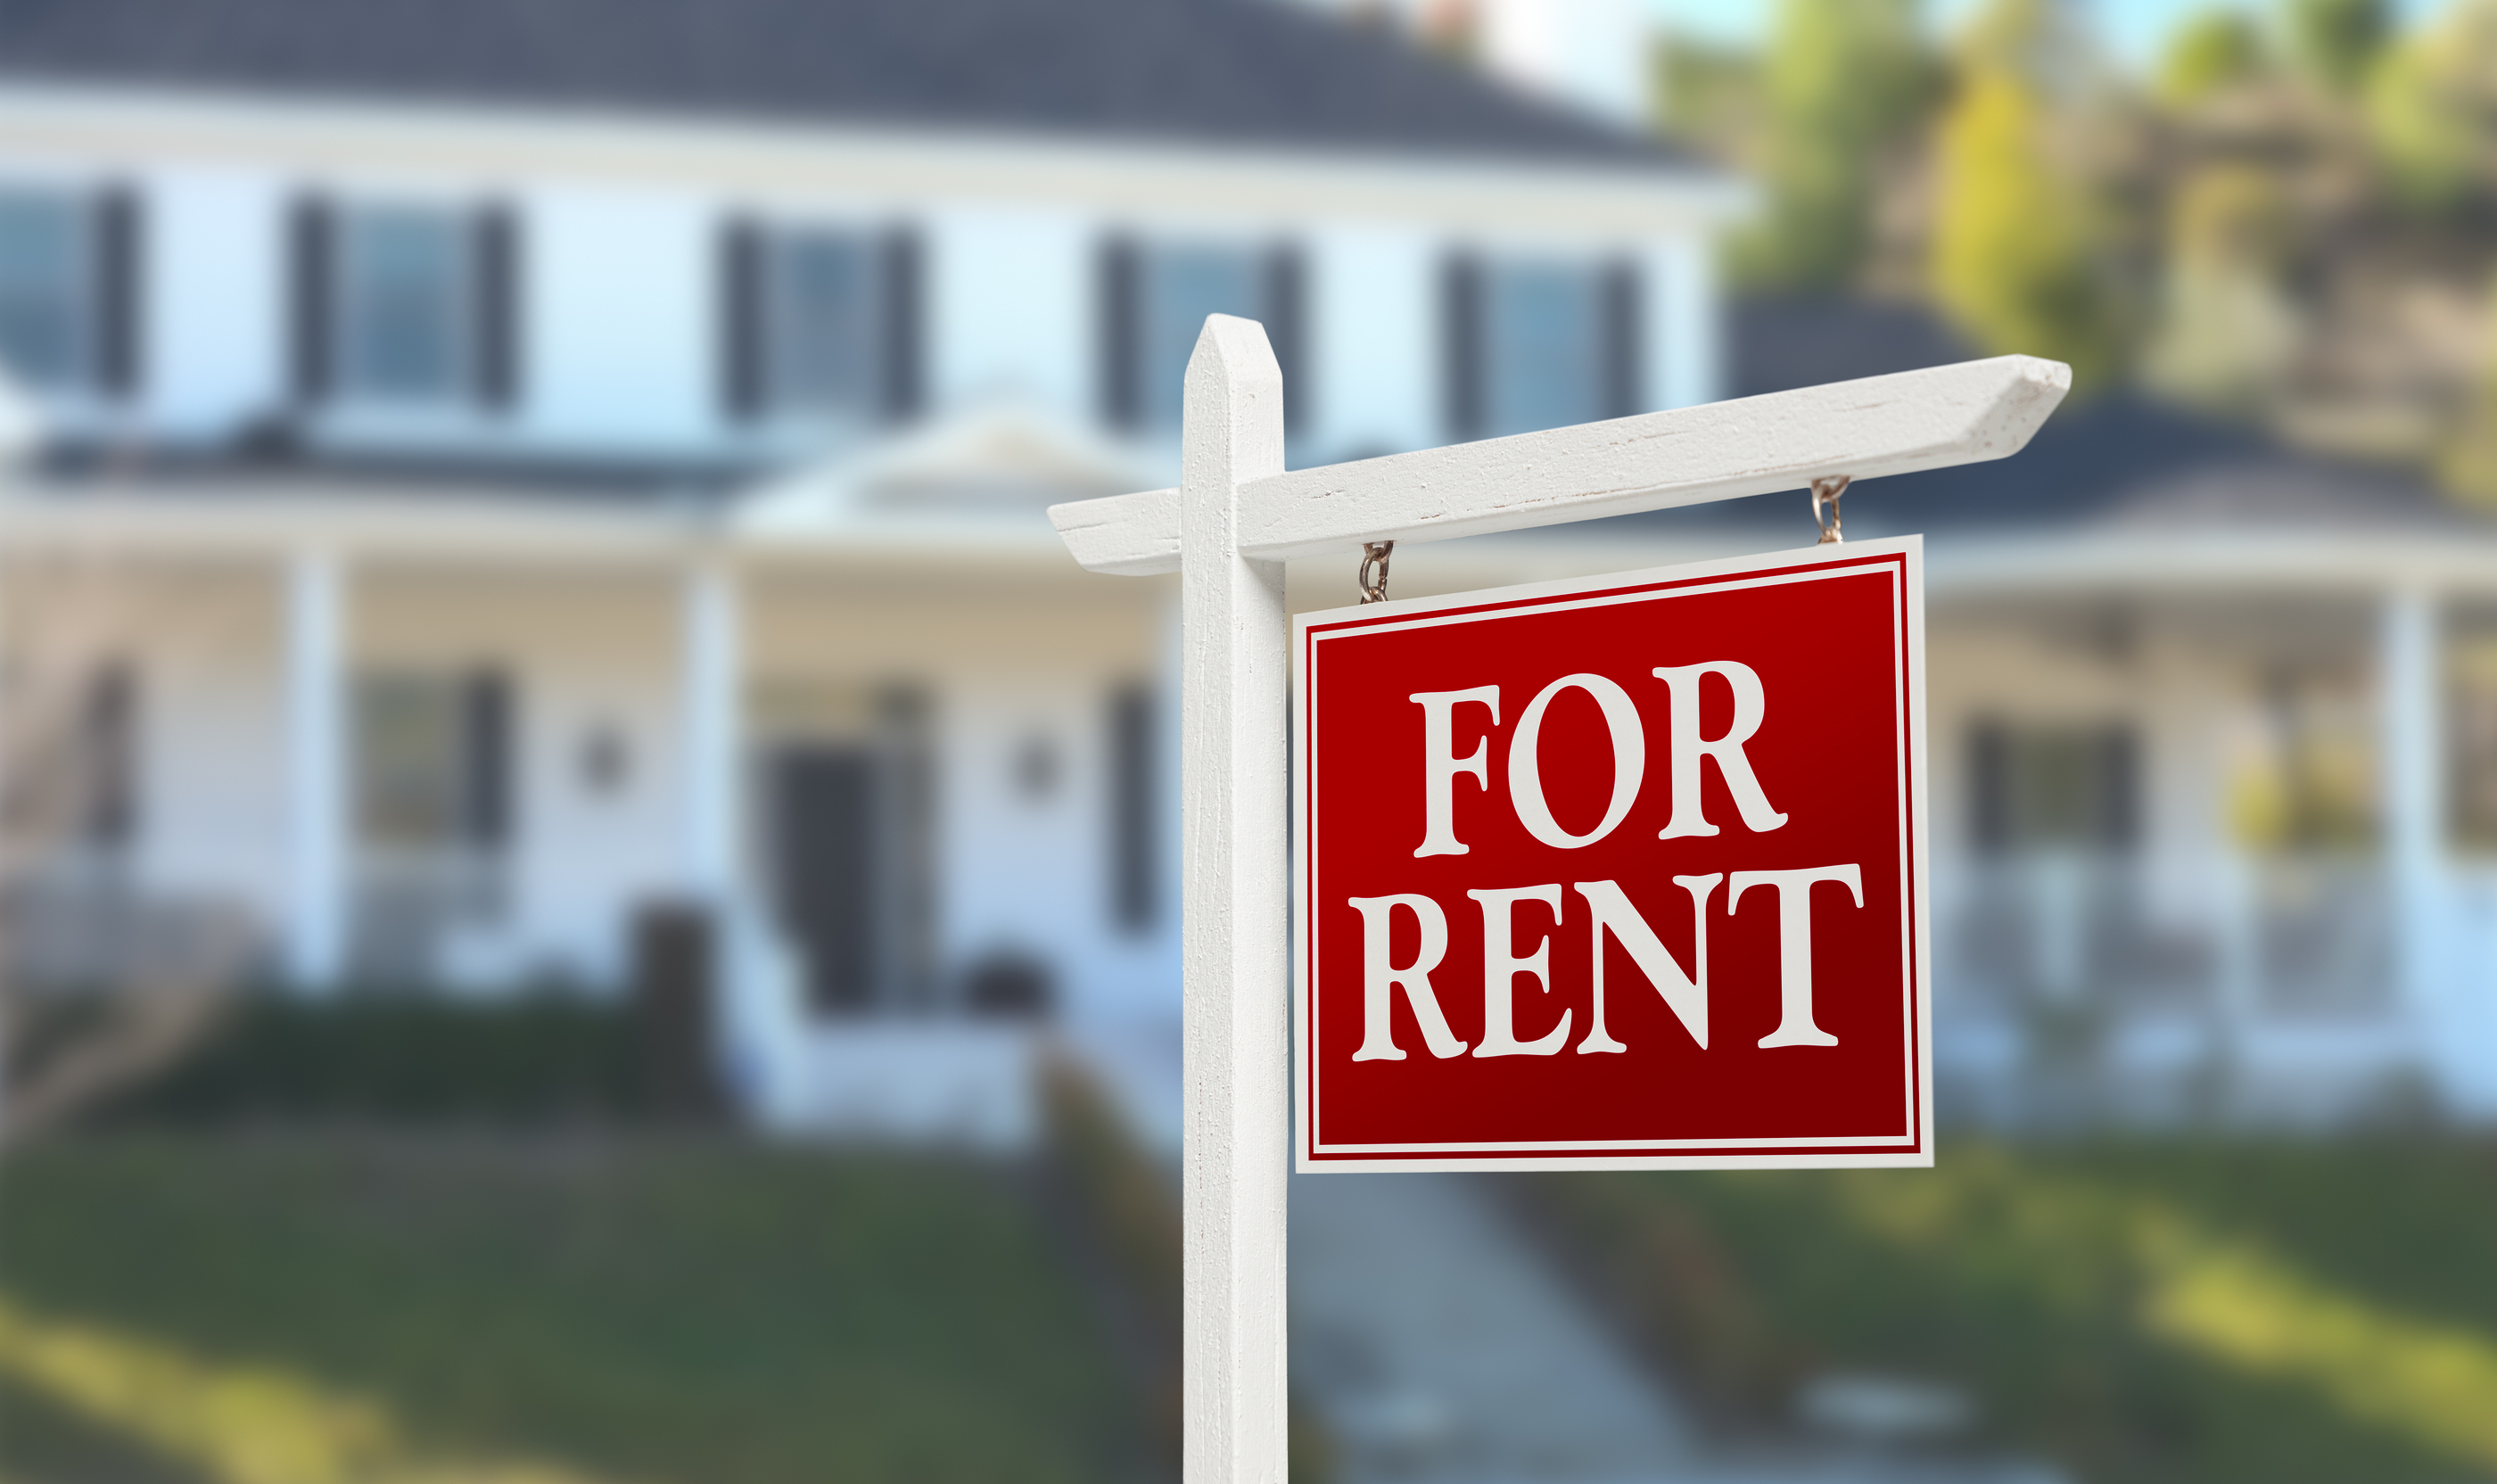 texas renters insurance - kent stehling insurance agency